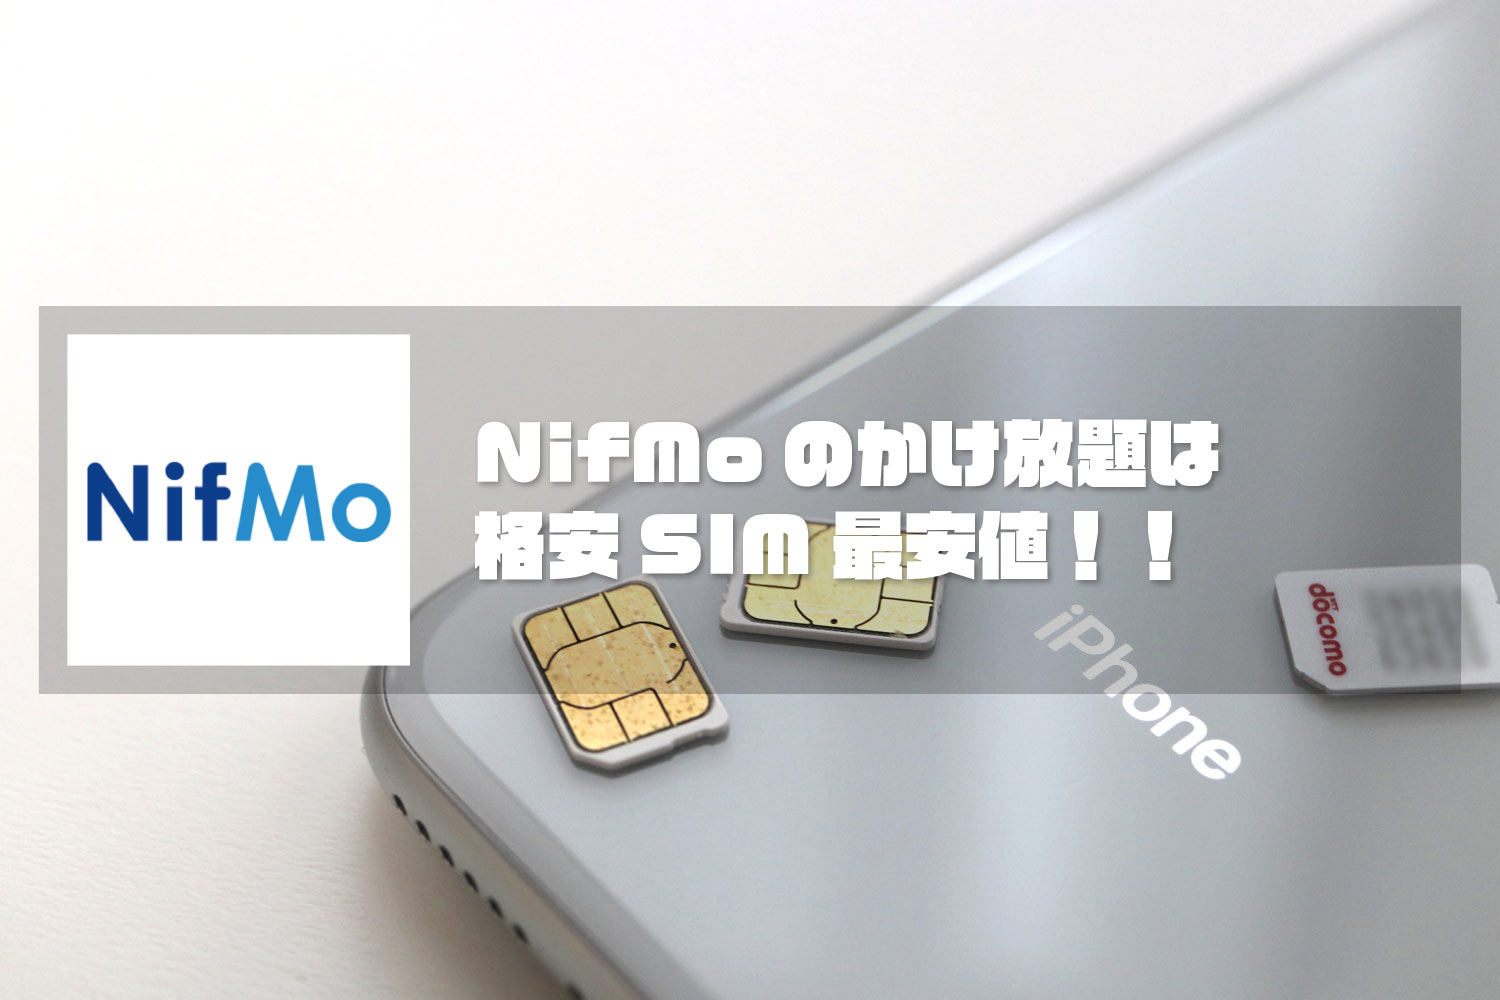 NifMo かけ放題オプション